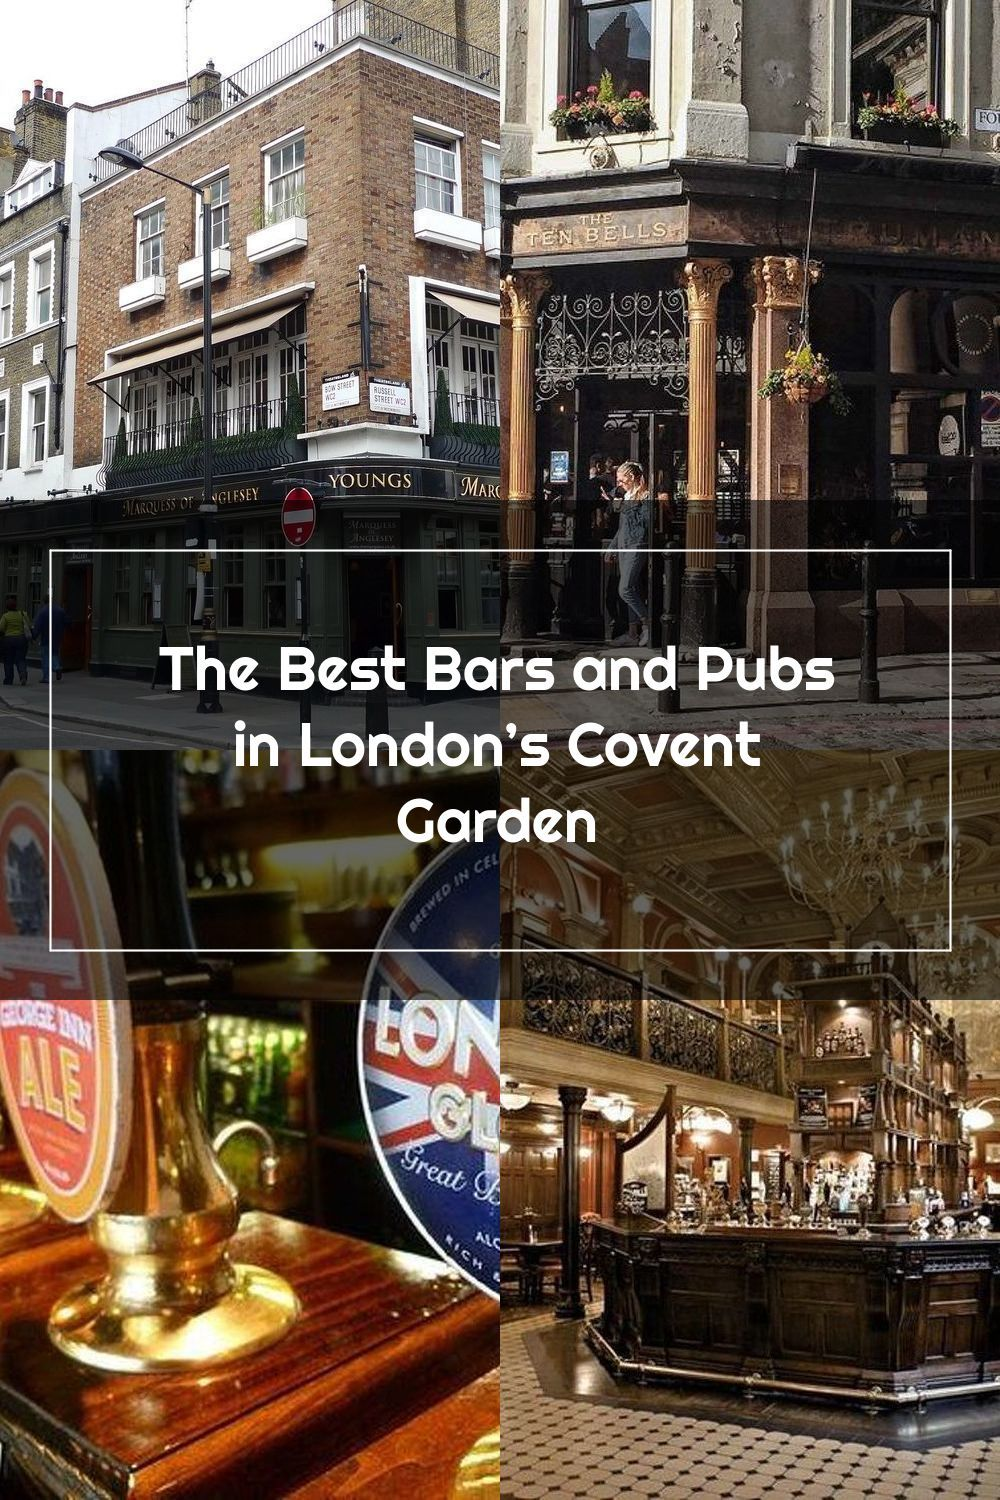 The Best Bars and Pubs in London's Covent Garden in 2020